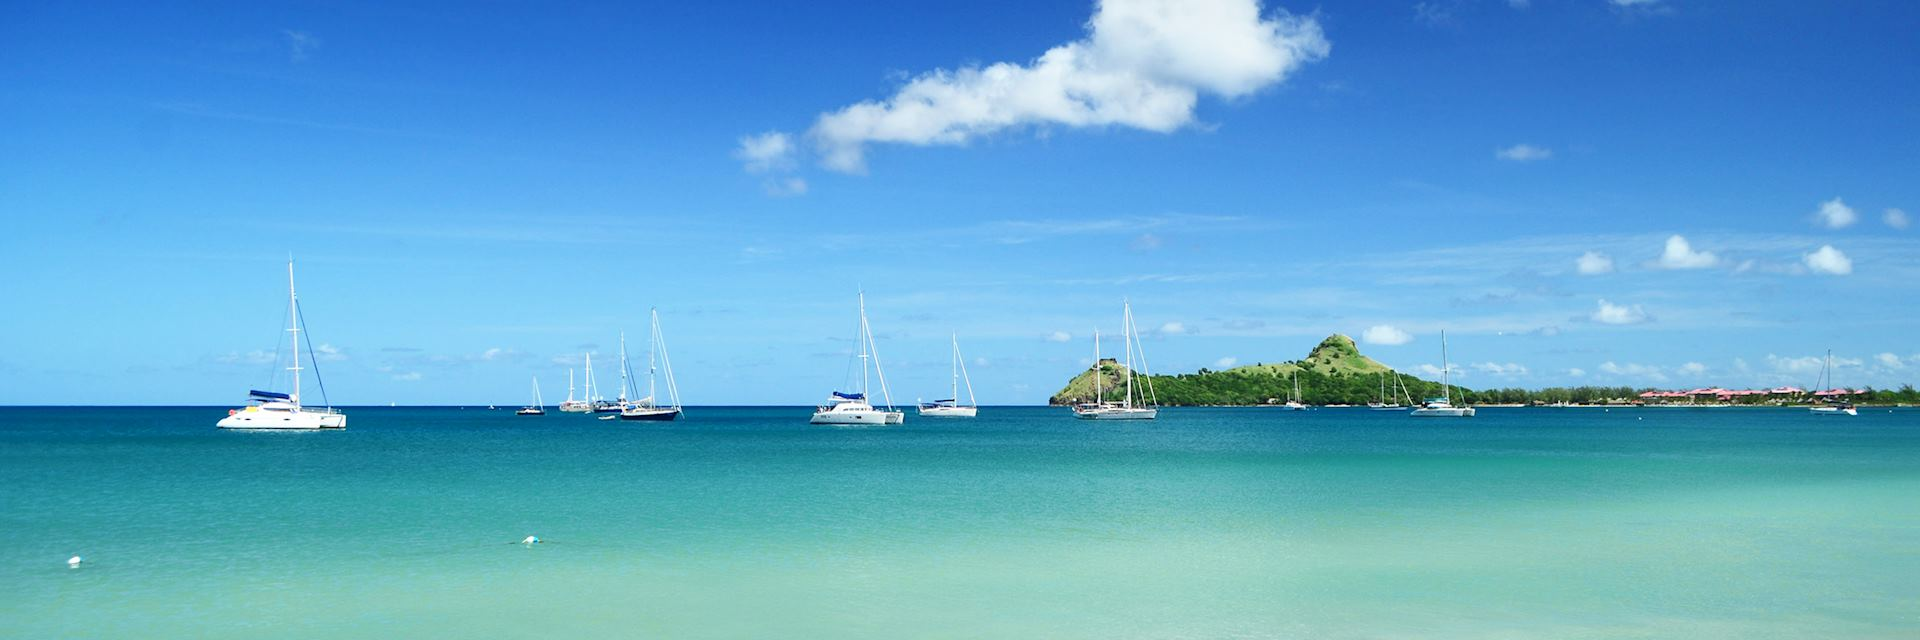 Yachts in Rodney Bay